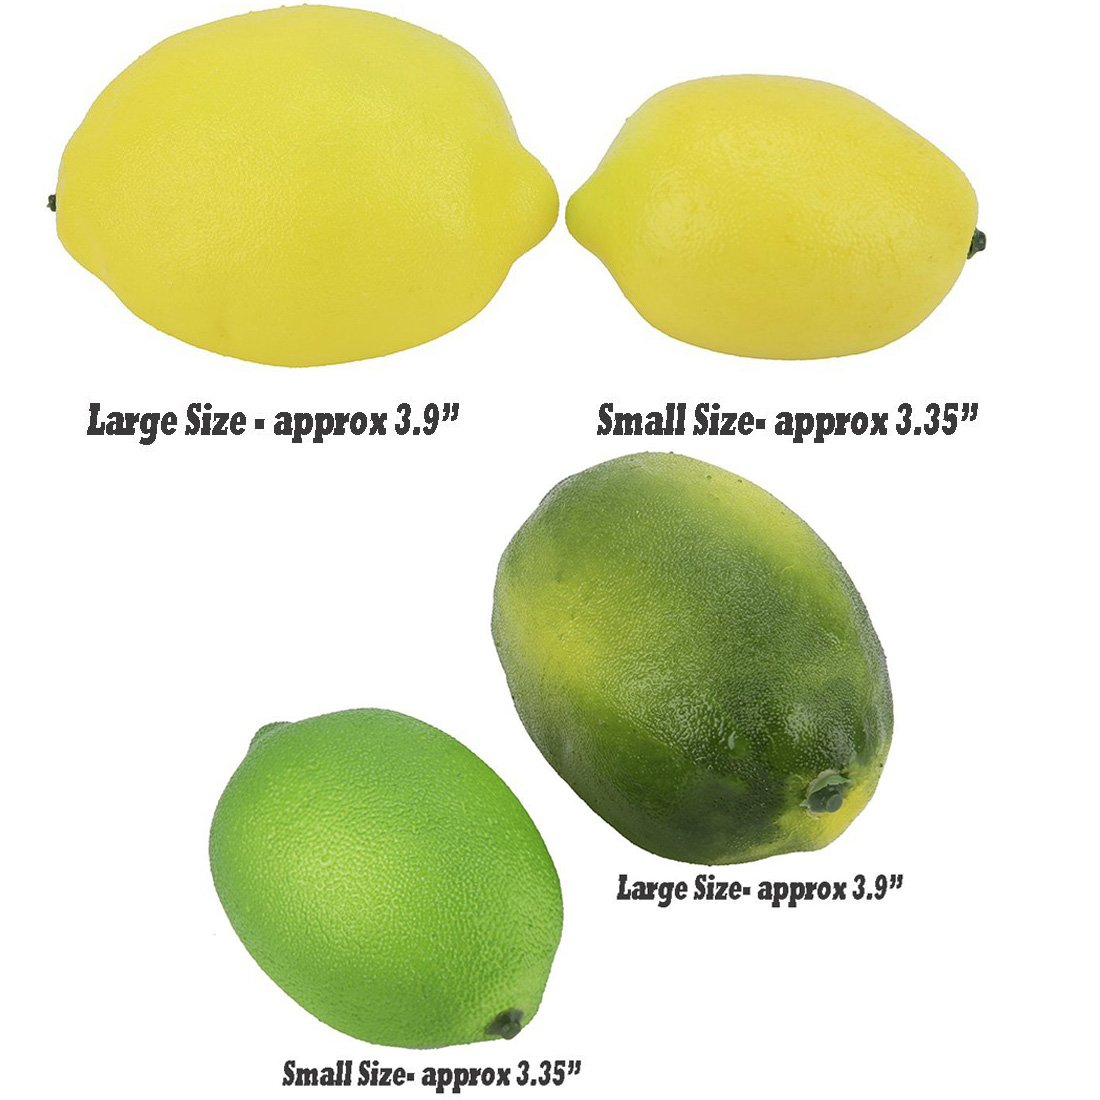 Buytra 8 Pack Artificial Fake Lemons Limes Fruit for Vase Filler Home Kitchen Party Decoration Yellow and Green 3.35 Small